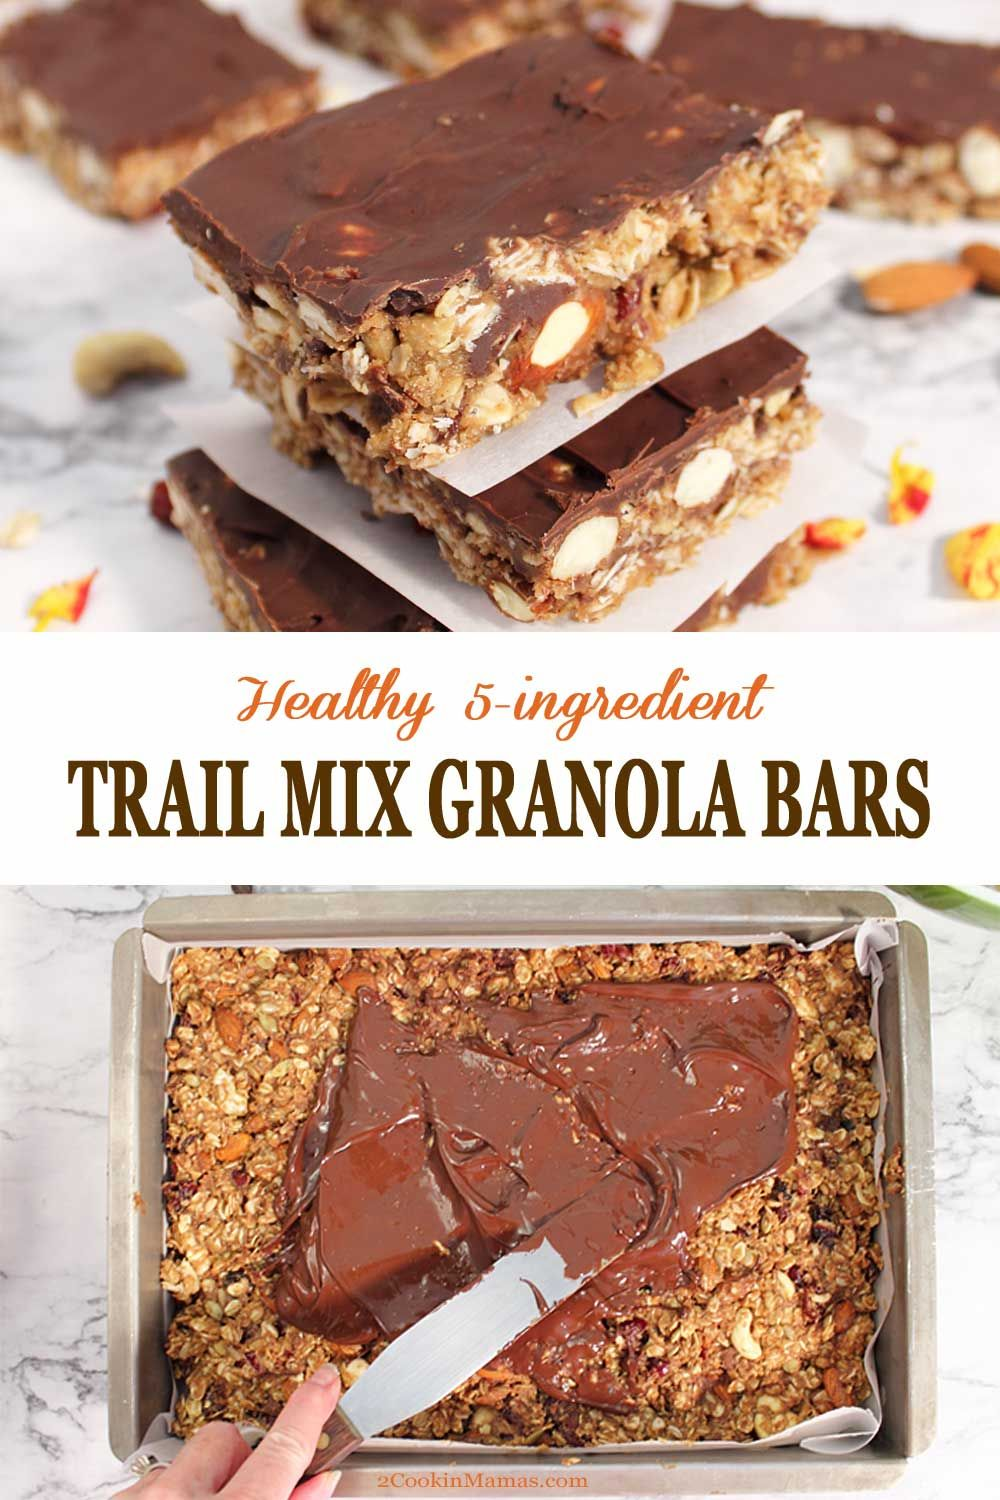 Healthy trail mix granola bars